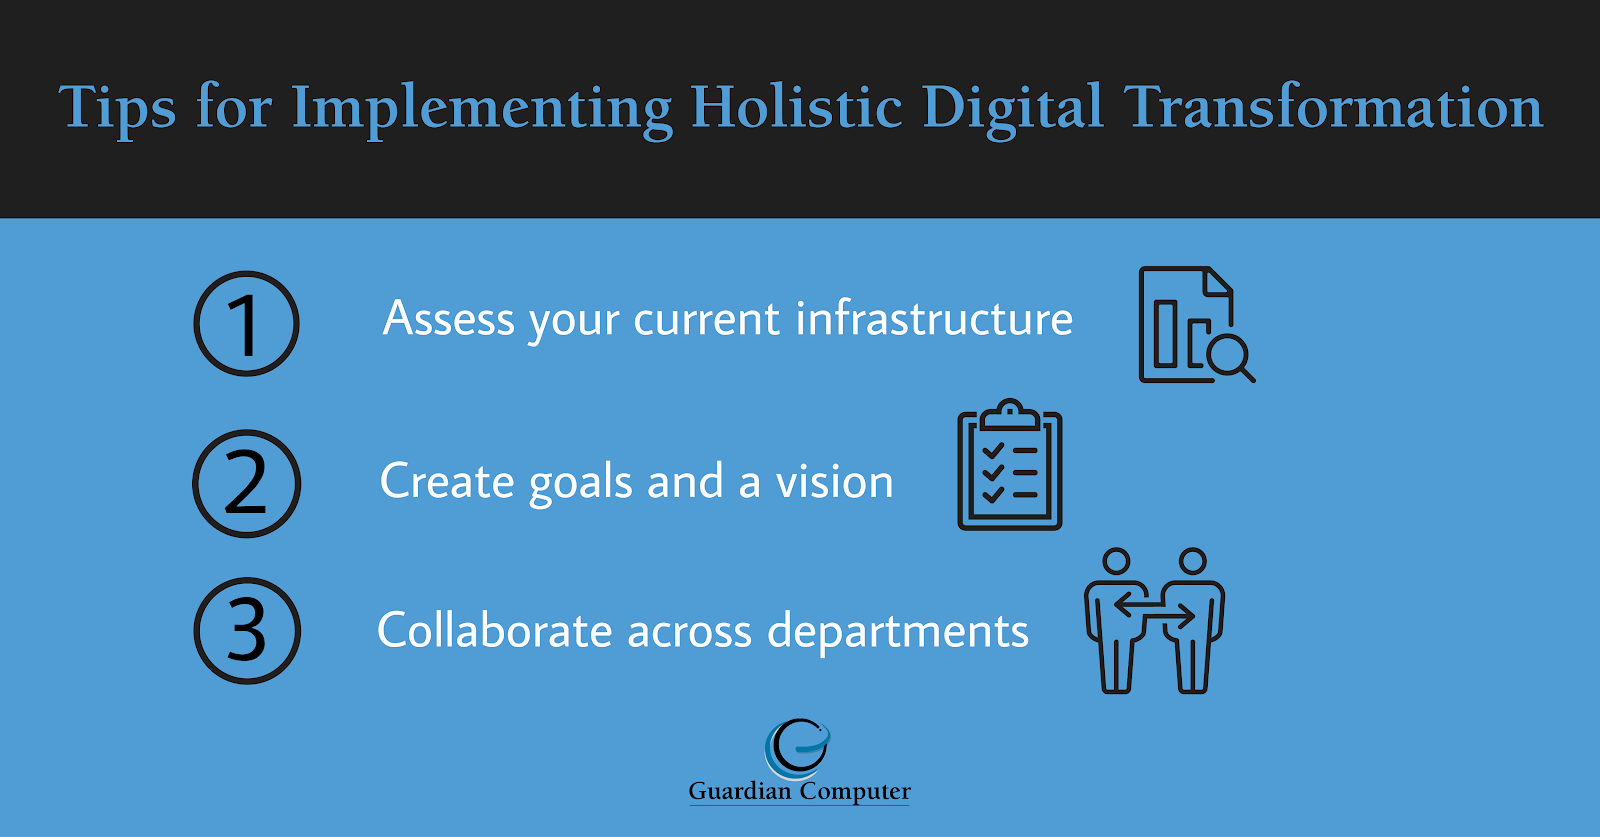 Check out our infographic or keep reading for 3 tips for implementing holistic digital transformation.